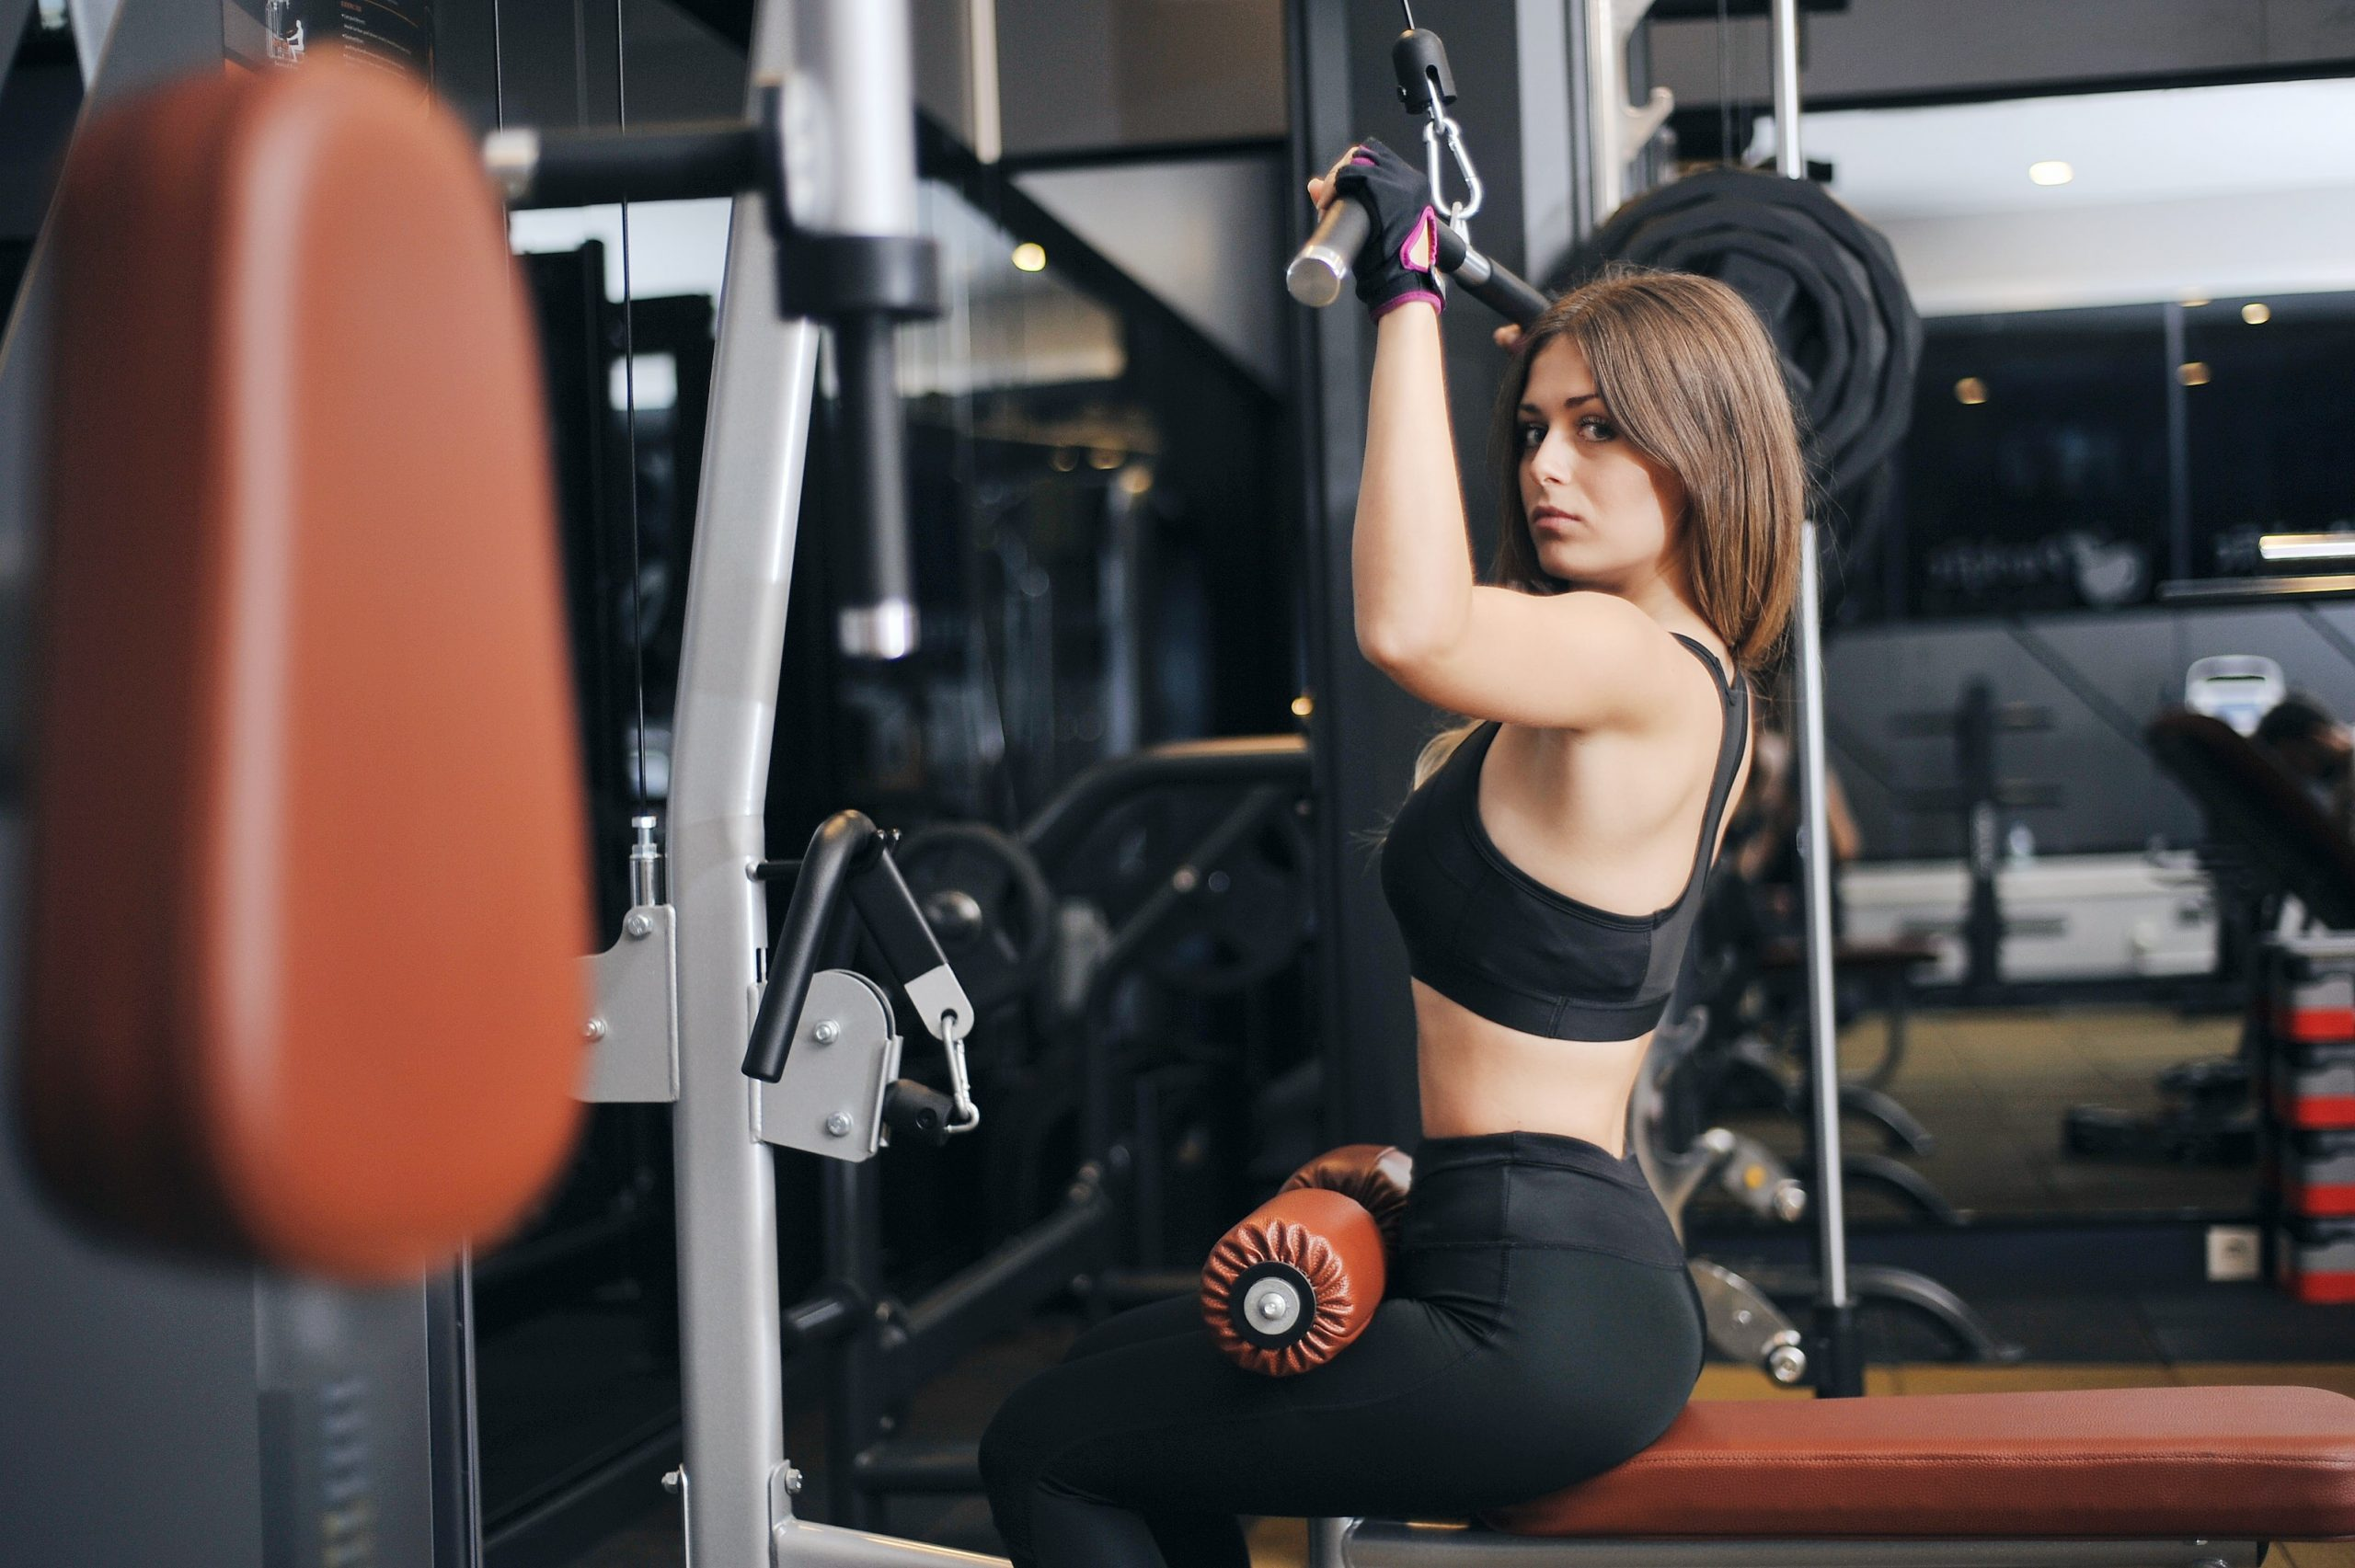 Strengthening Exercises Help Prevent Injuries